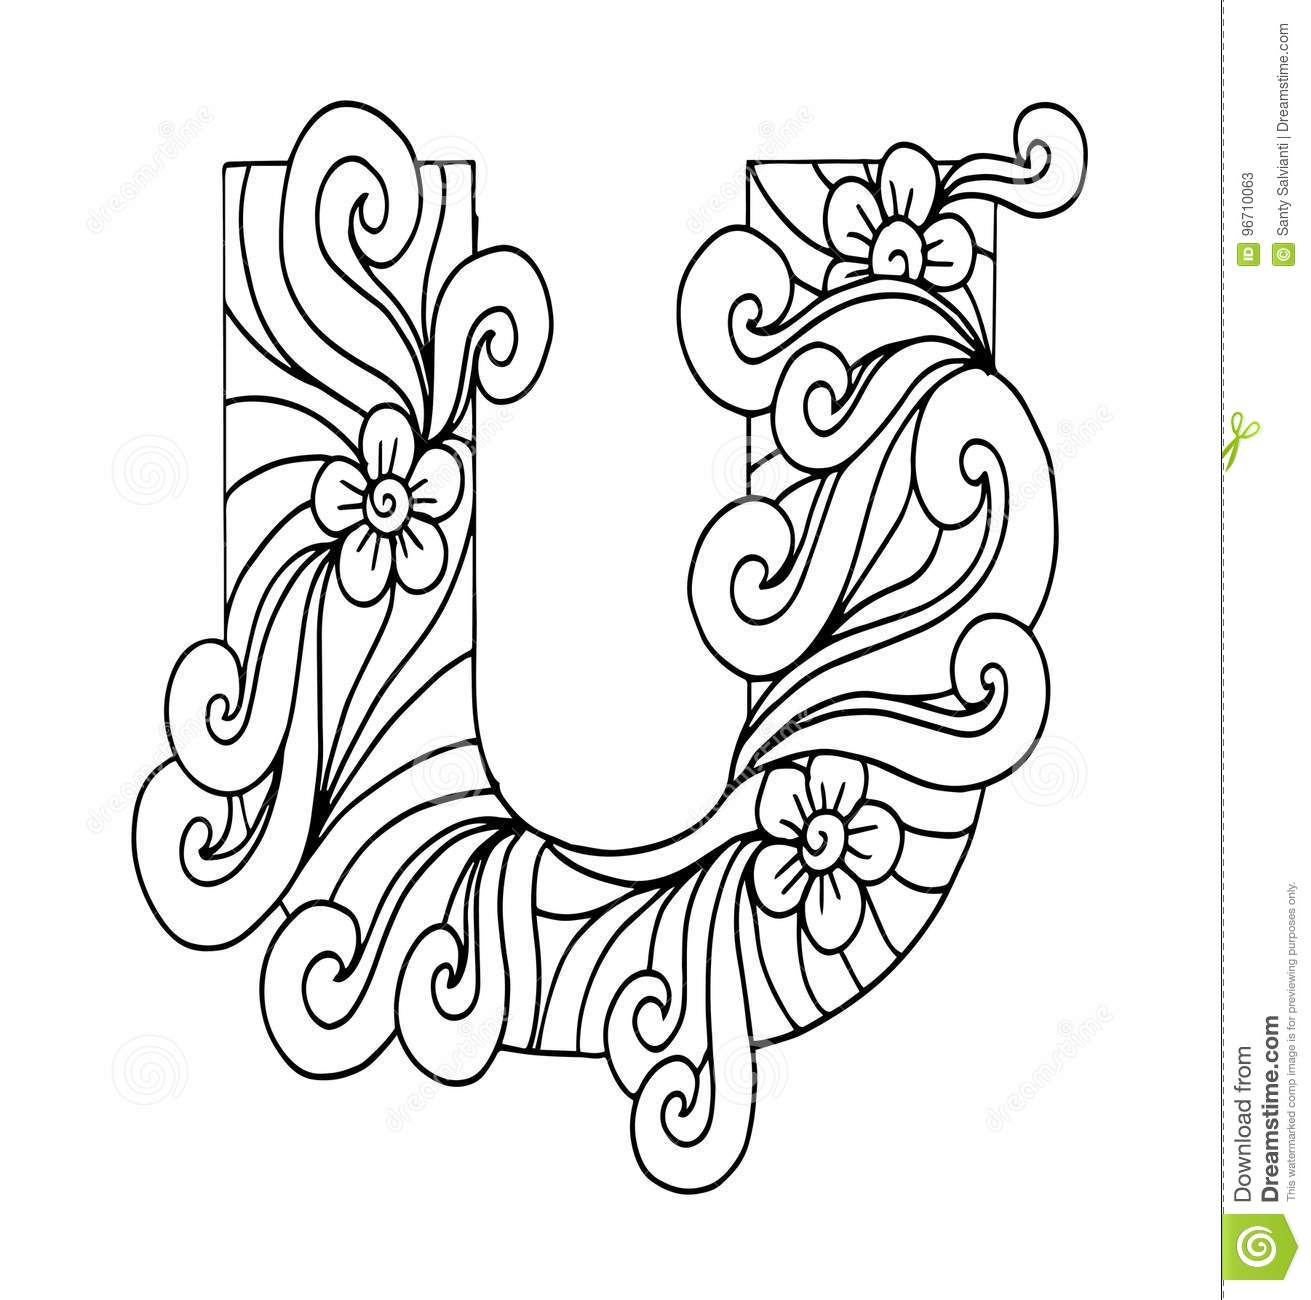 zentangle coloring pages letter n | Zentangle Stylized Alphabet. Letter U In Doodle Style ...